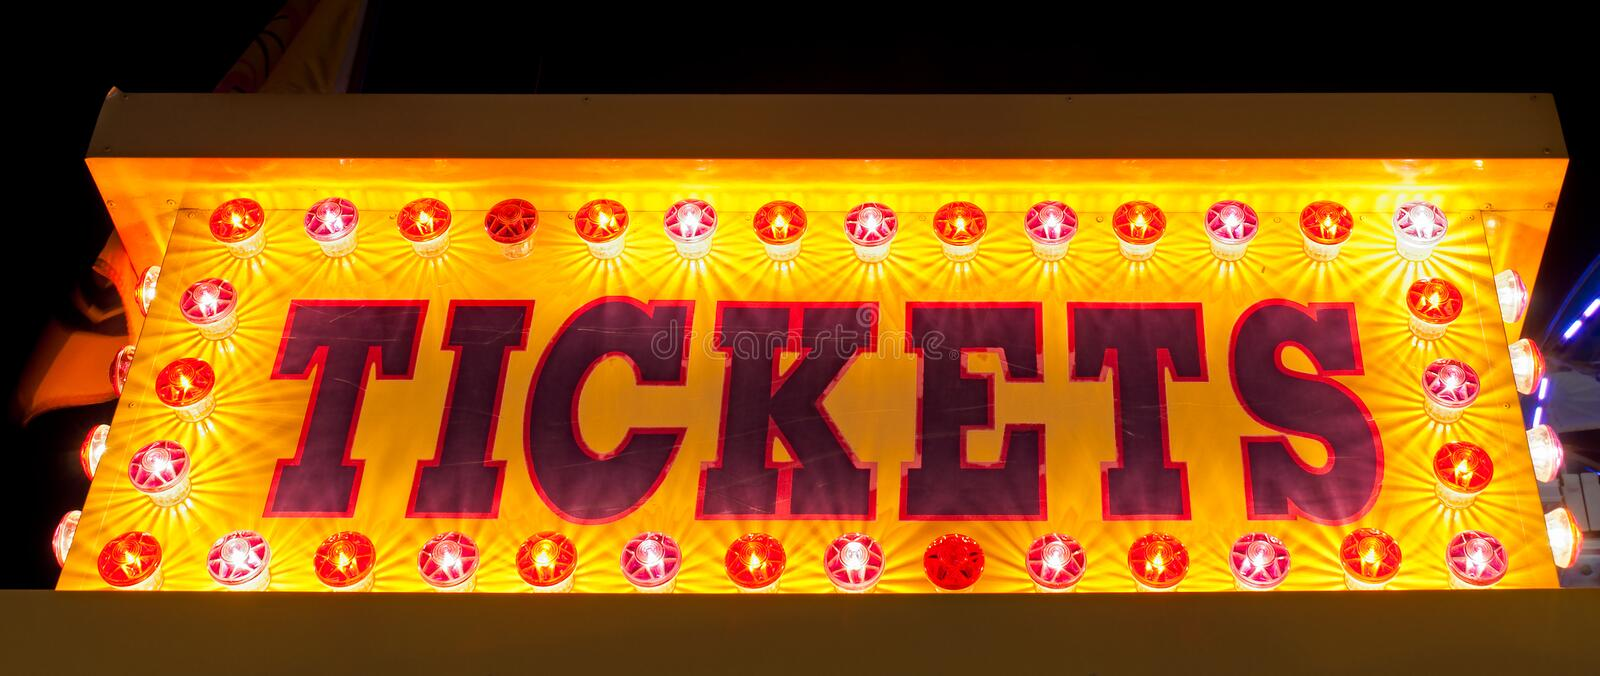 Tickets stock images